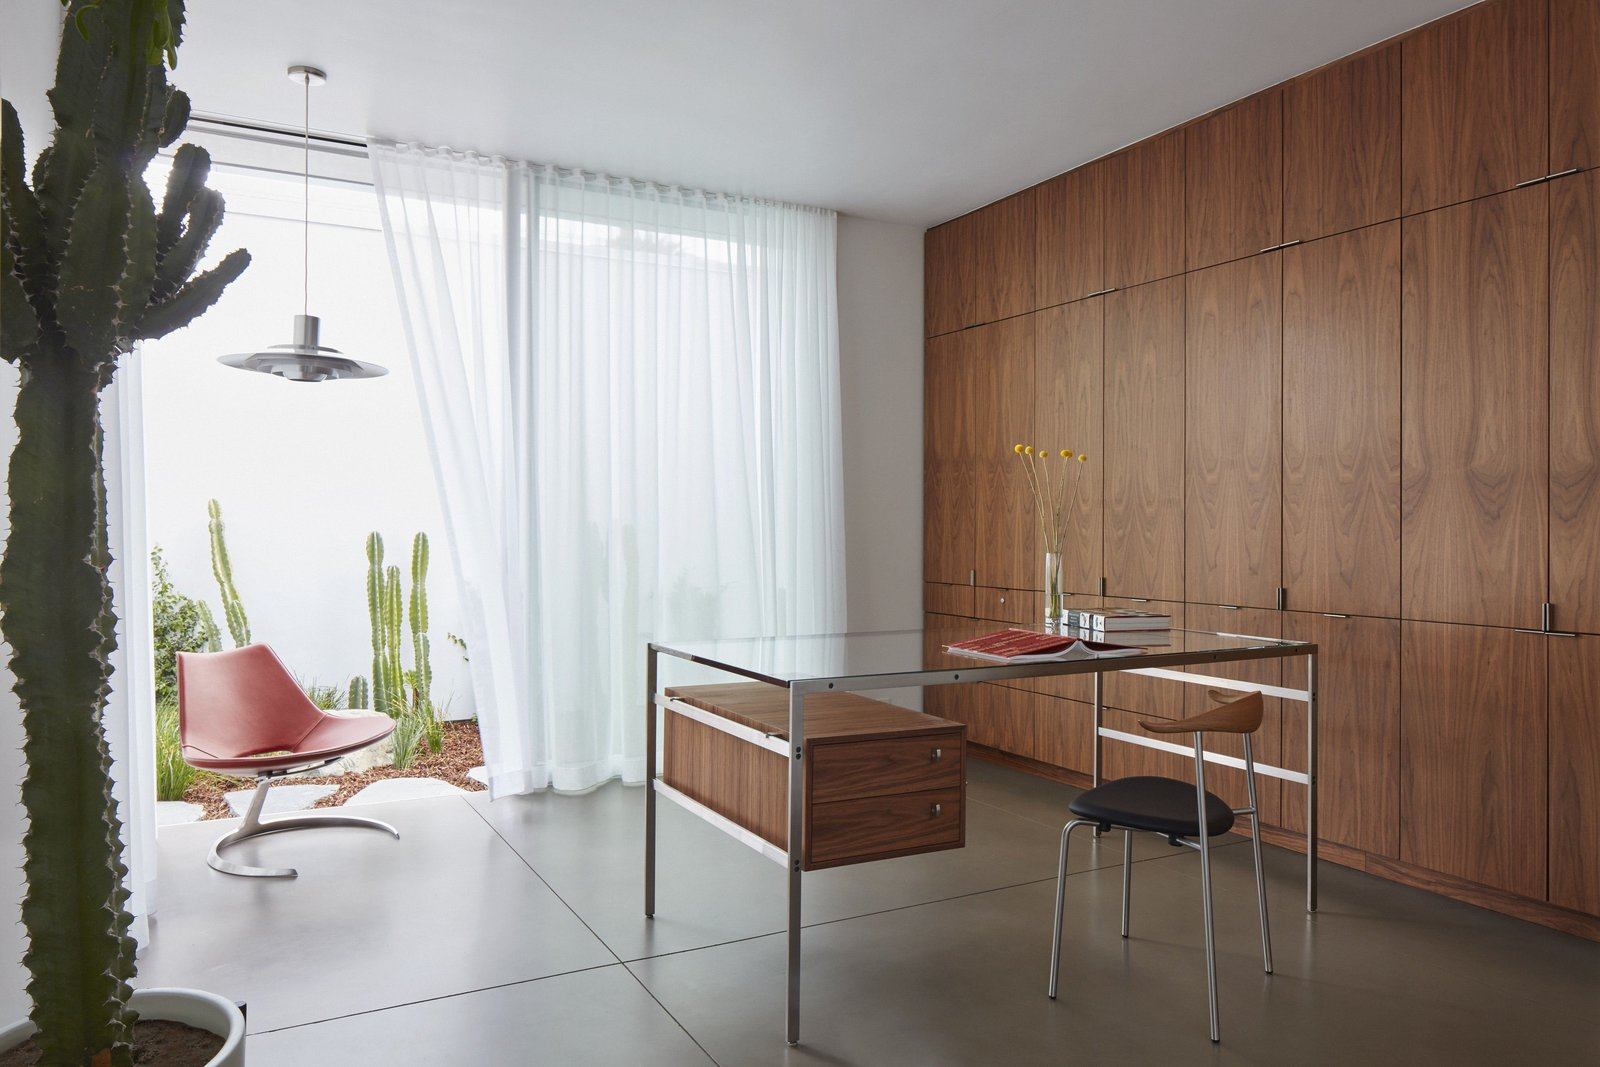 Office, Study Room Type, Chair, Desk, Concrete Floor, Lamps, and Storage In 2015 the Fabricius & Kastholm desk bo-555 was manufactured for the Santa Monica Residence. Before that, it hadn't been manufactured for more than two decades.  Santa Monica Residence